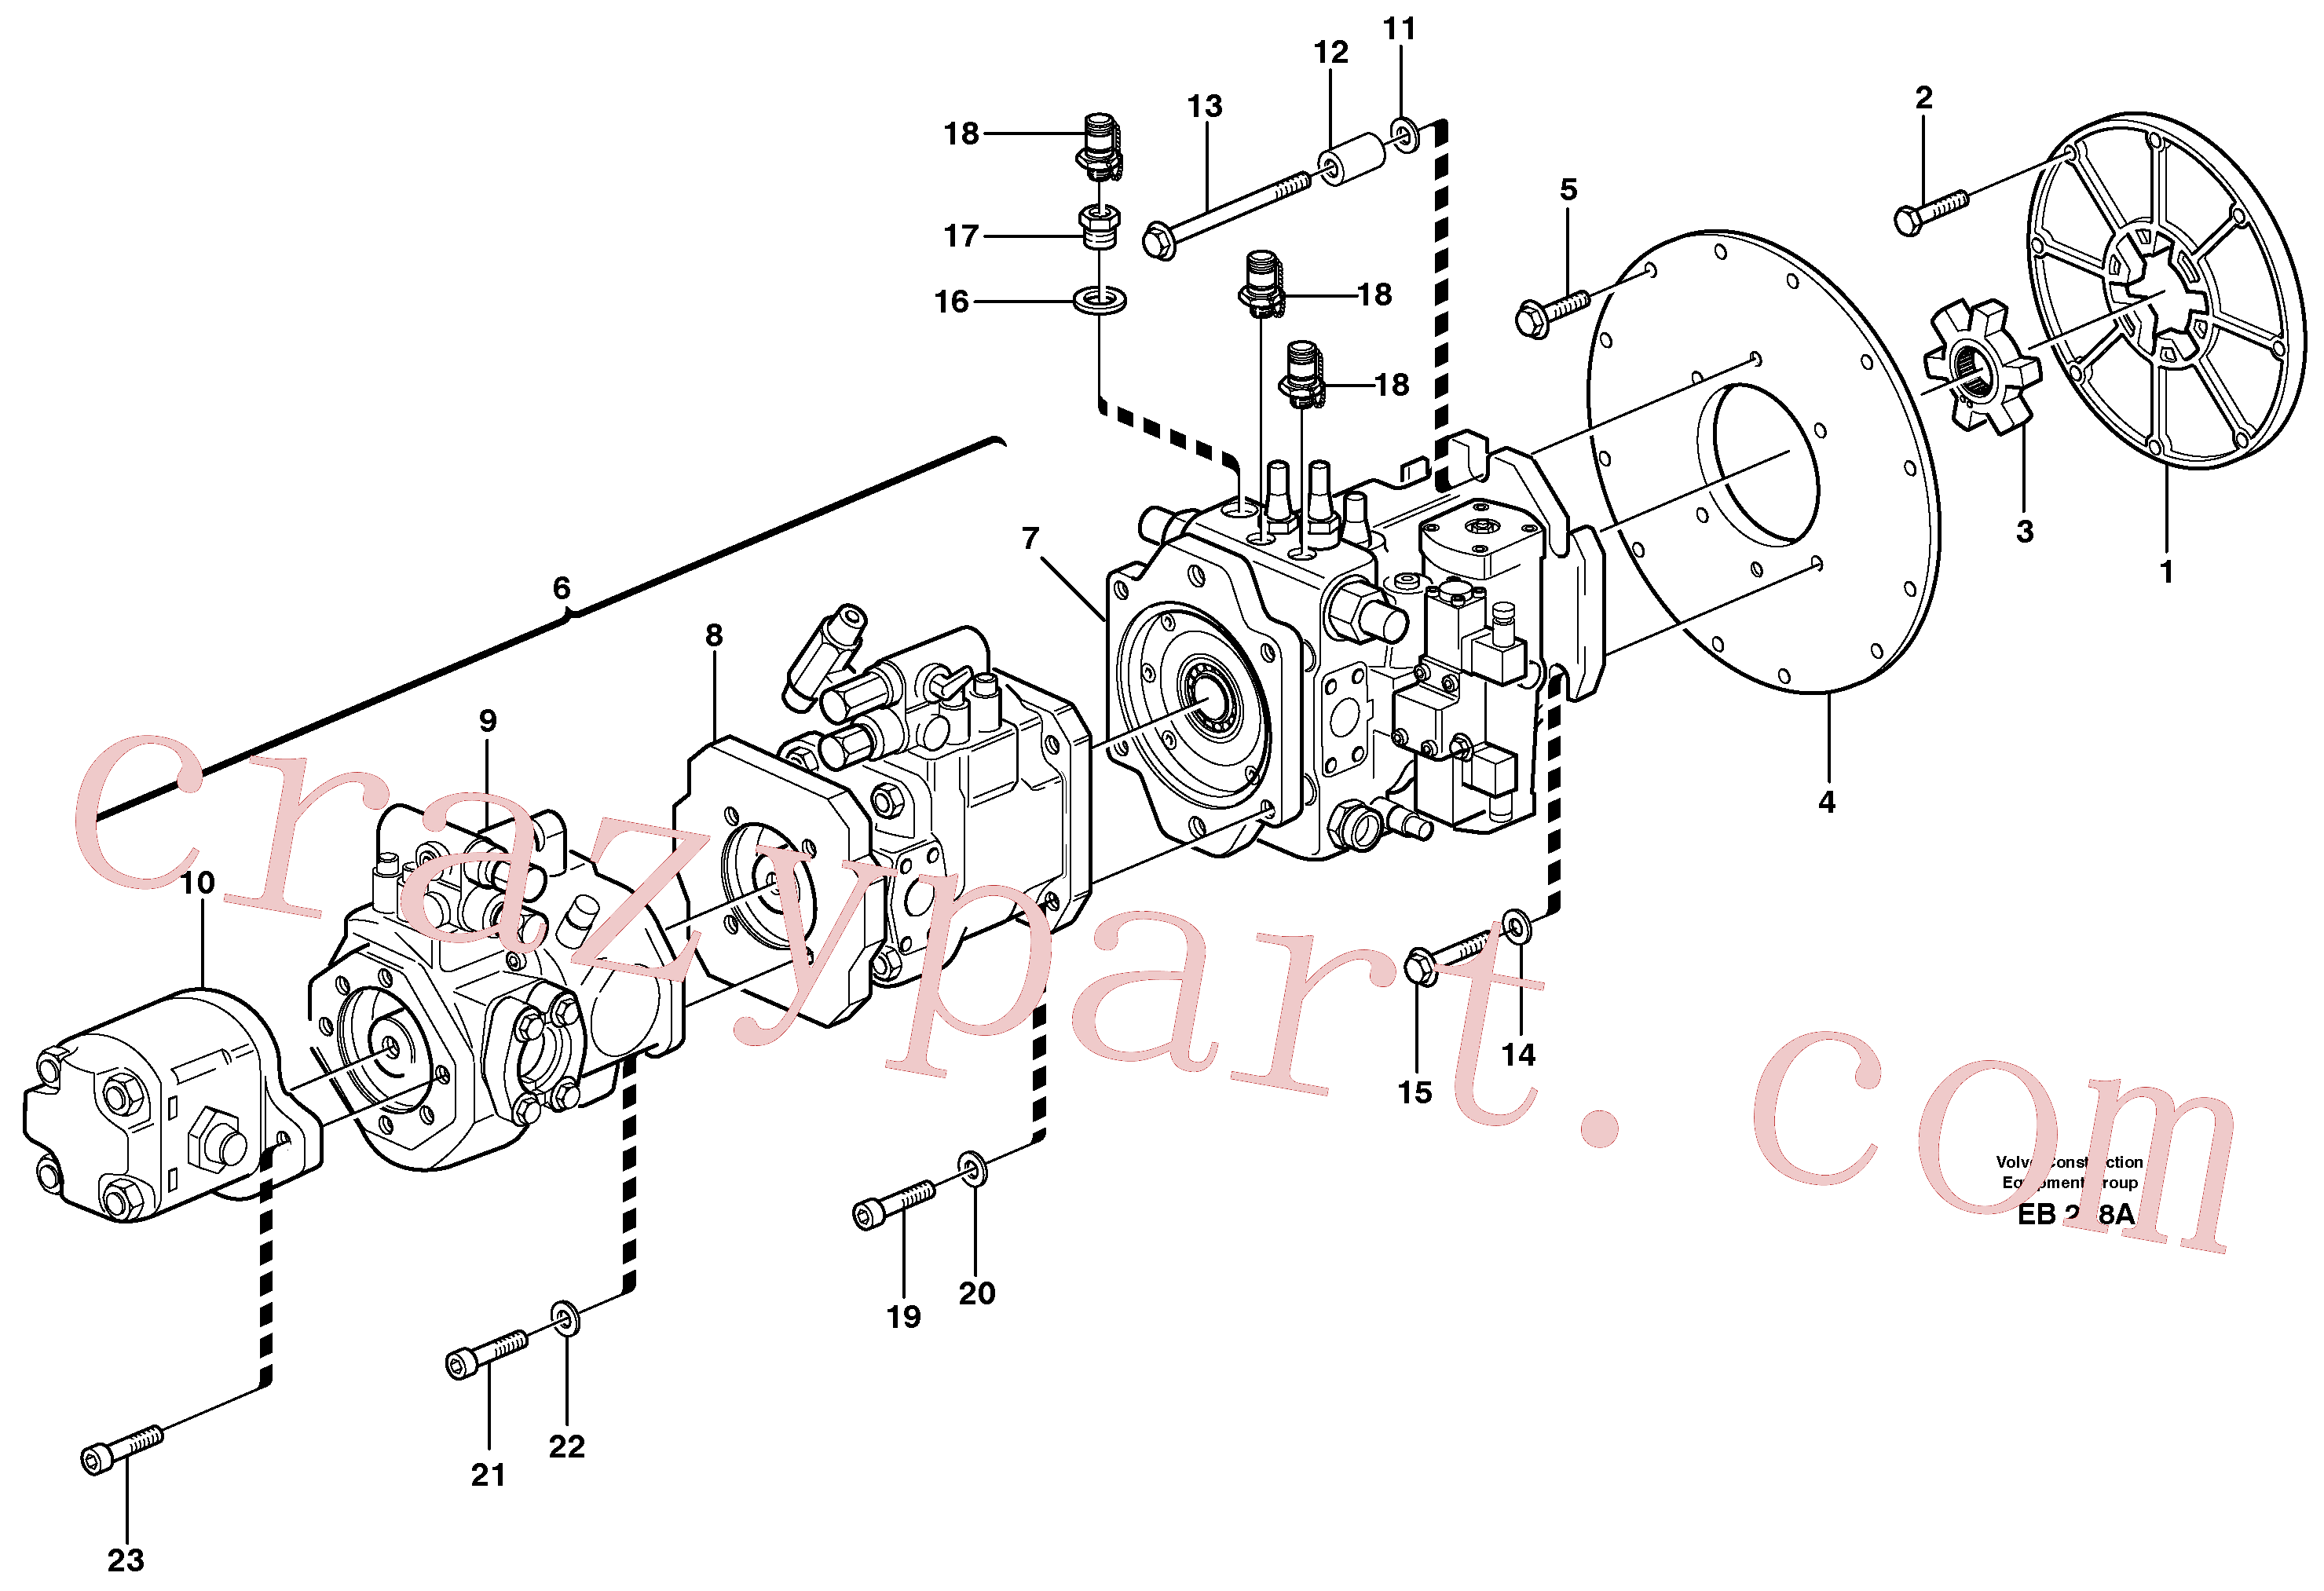 VOE11100853 for Volvo Pump with fitting parts(EB228A assembly)